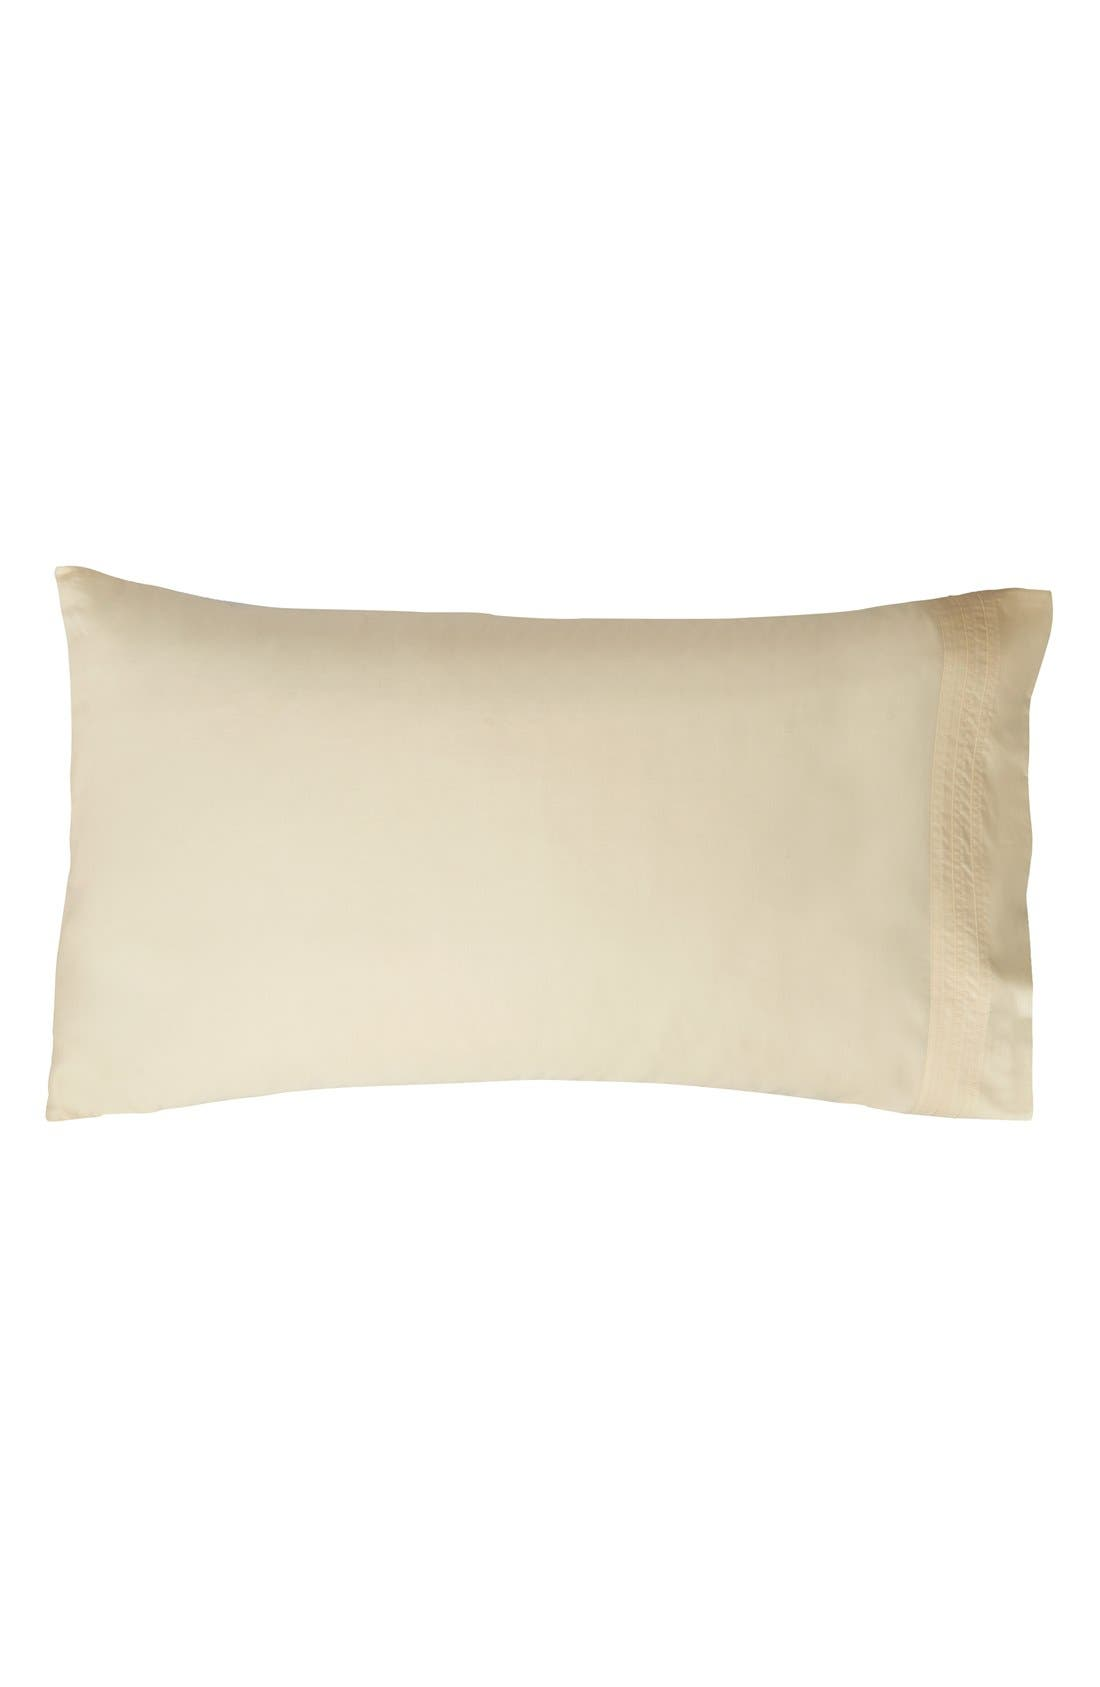 Donna Karan Collection 510 Thread Count Pillowcases,                             Main thumbnail 1, color,                             101